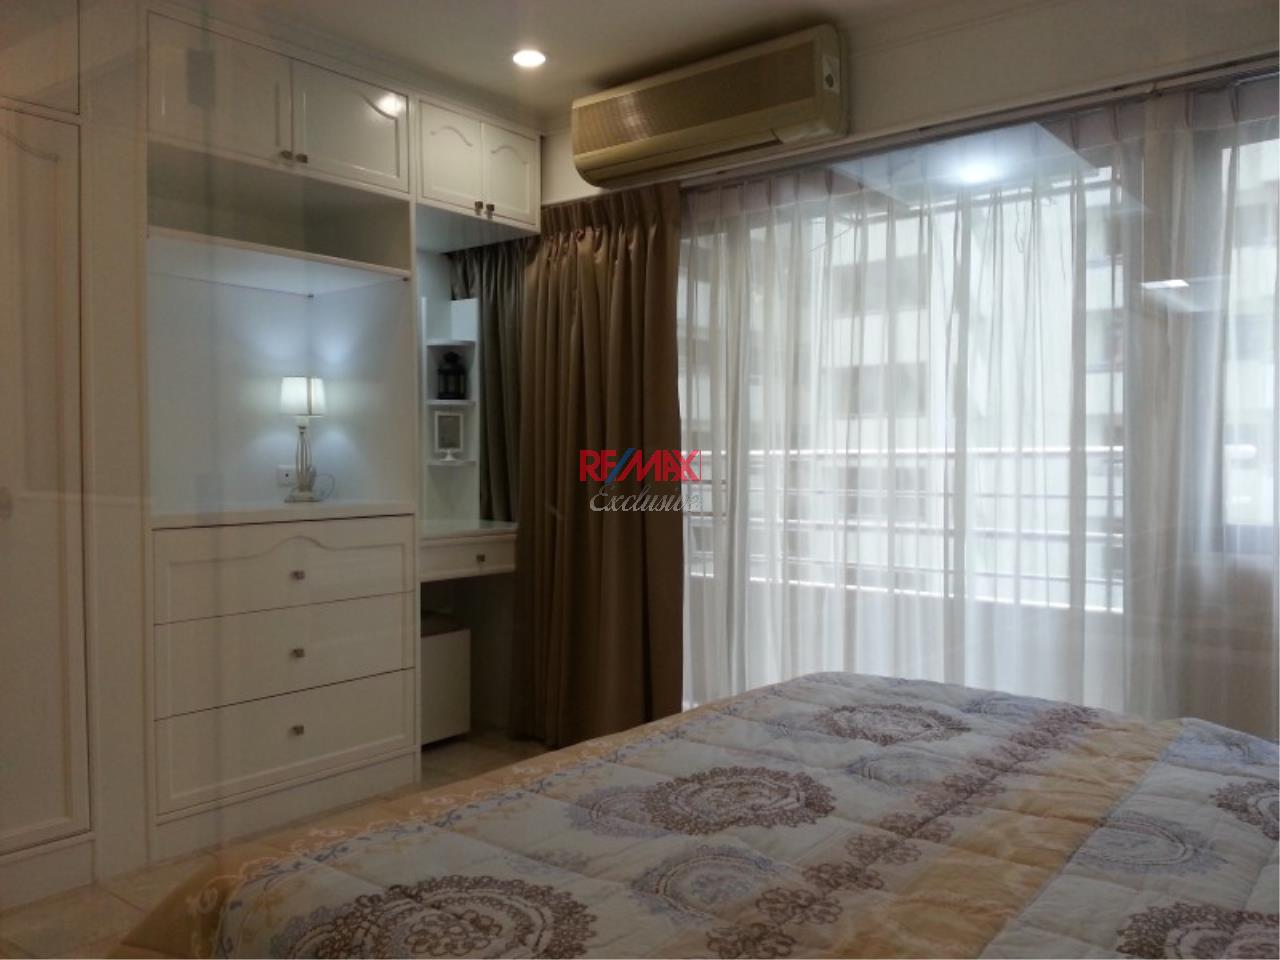 RE/MAX Exclusive Agency's Big 1 Bedroom for sale at Sarajai Mansion 4800000 16